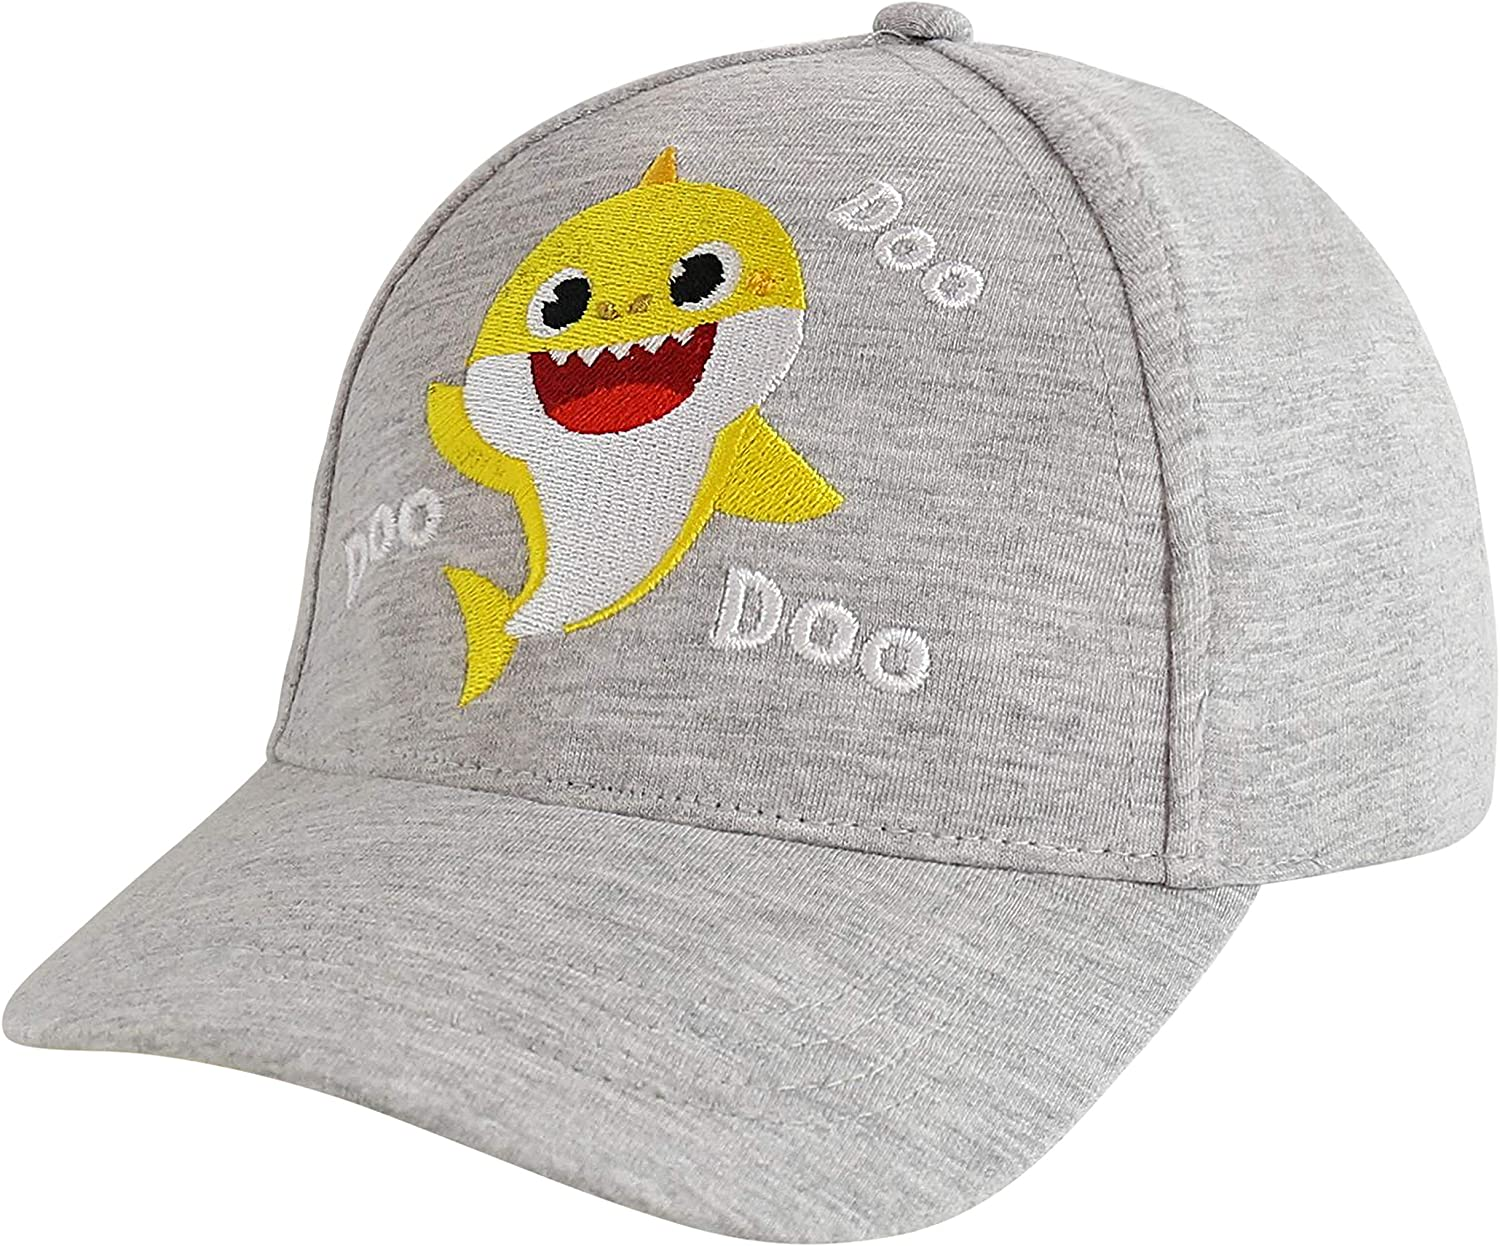 Pinkfong Cap, Baby Shark Baseball Hat for Ages, Grey, Toddler Kids Age 2-4